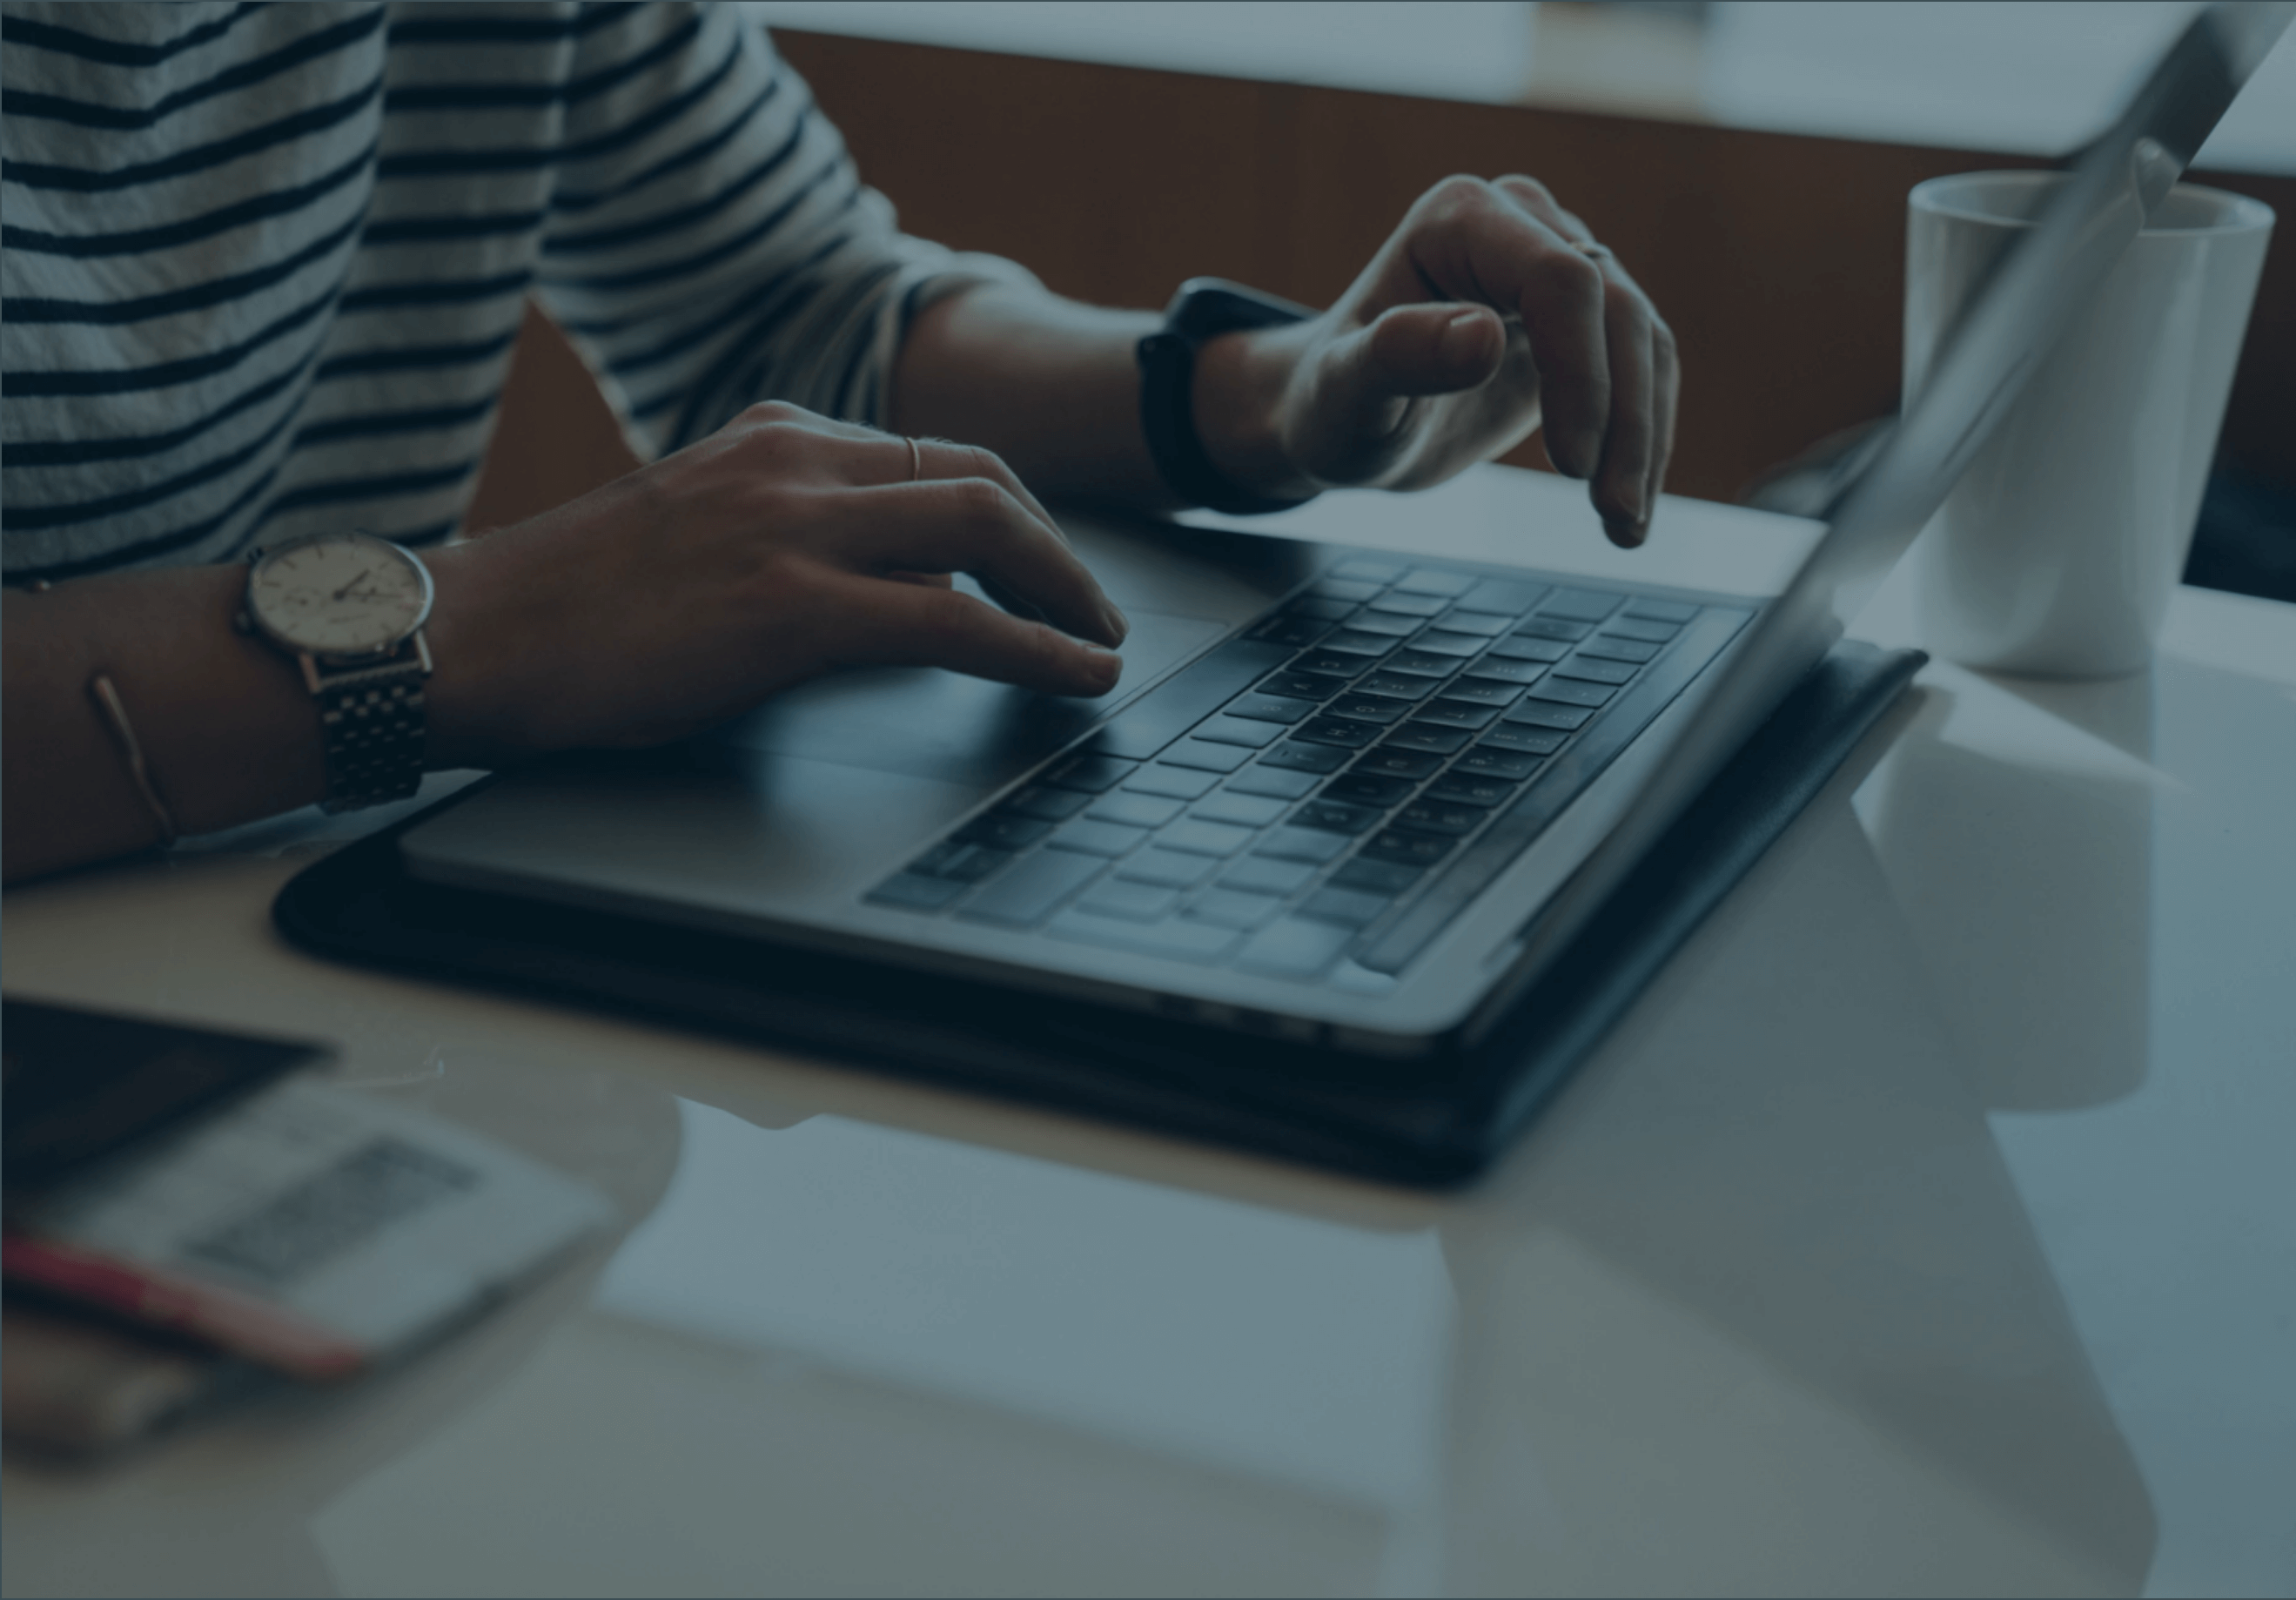 Why the professional in you wants to start online learning